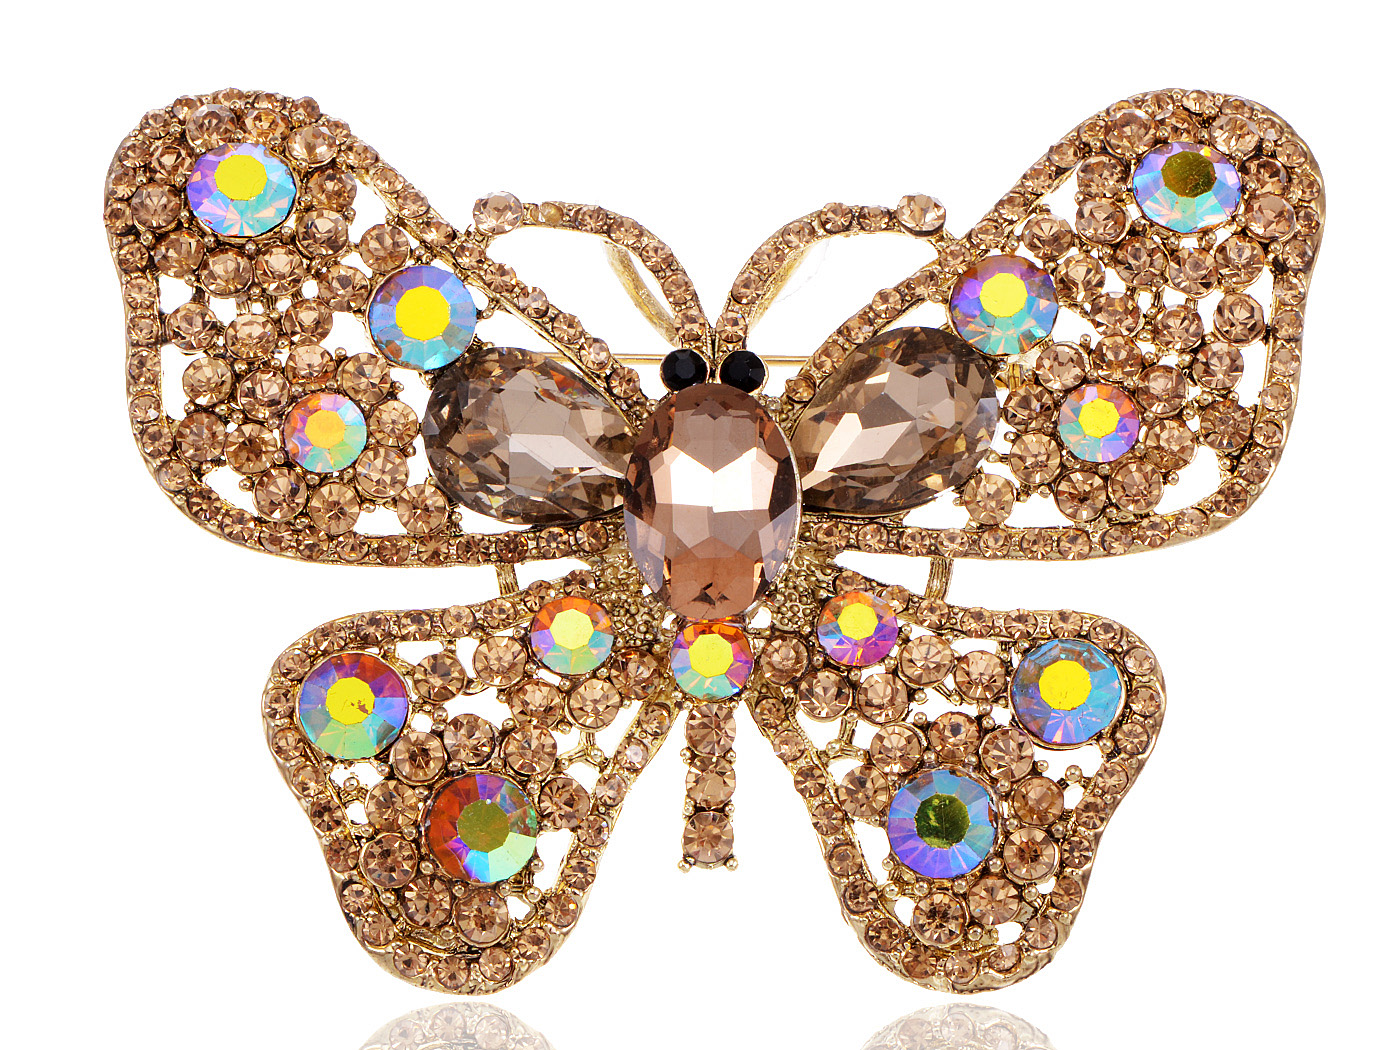 XL Brilliant Element Jewelry Topaz Crystal Rhinestone Butterfly Brooch by